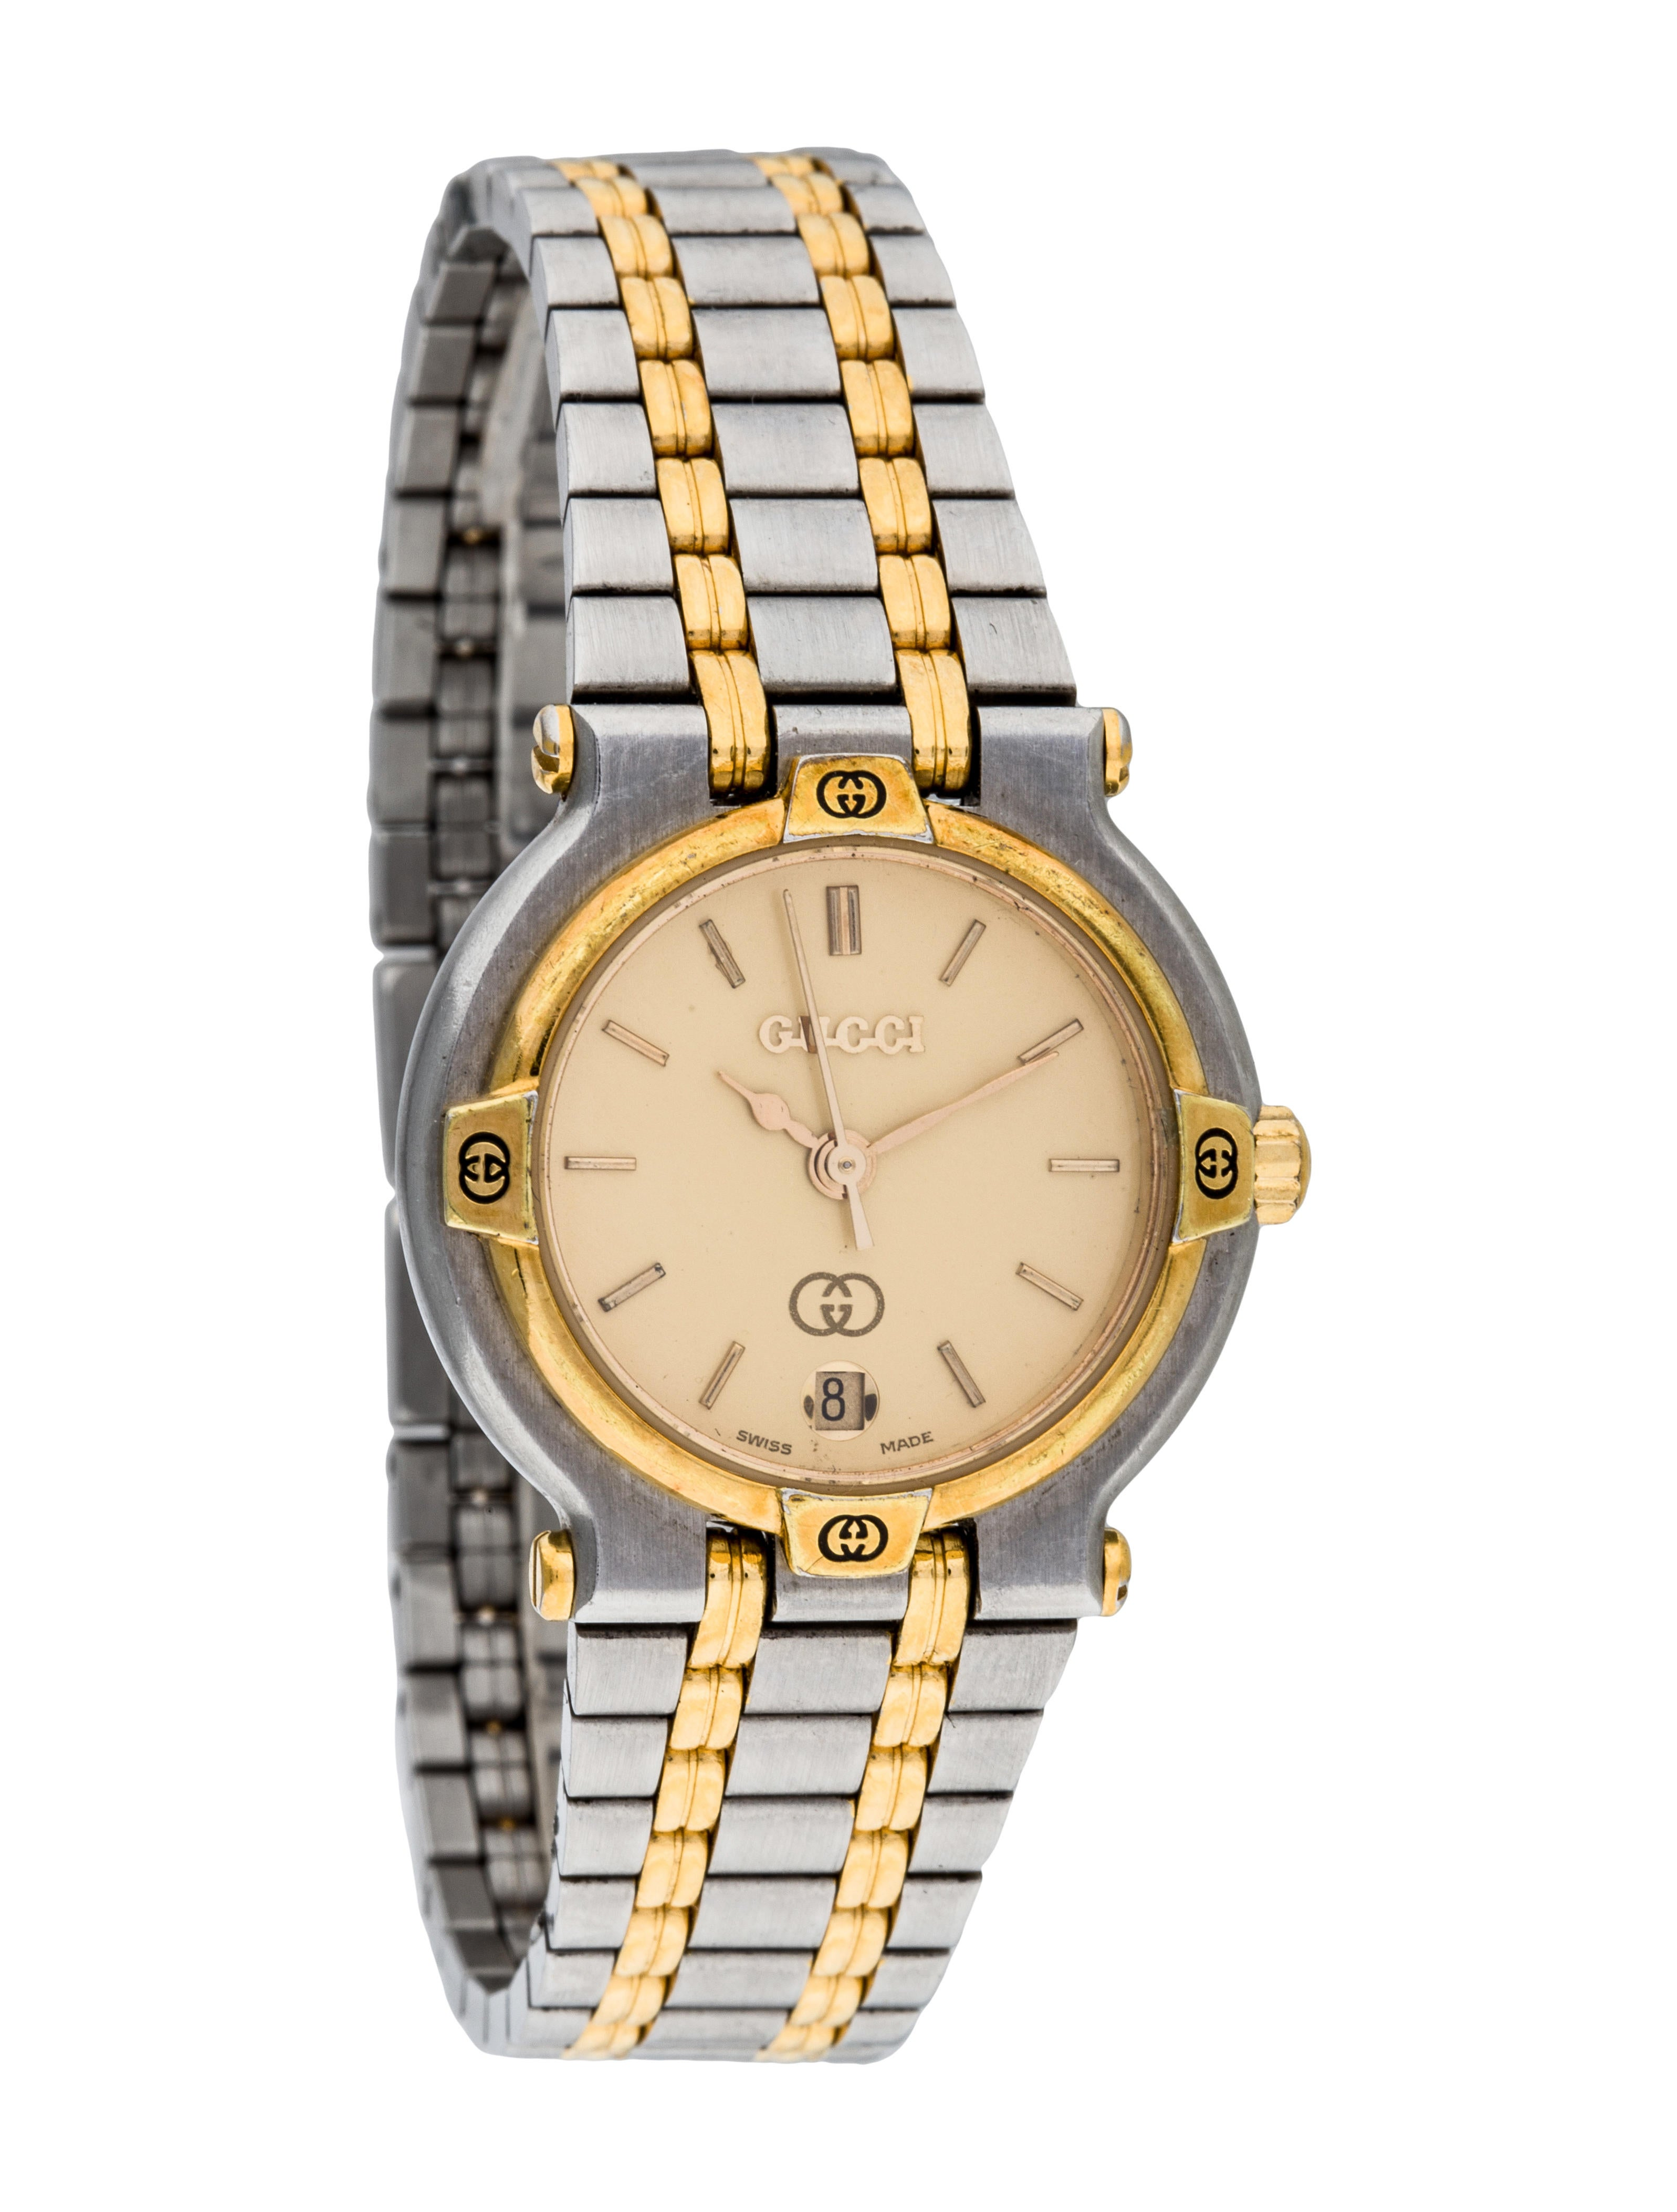 f9c85eed54d Gucci 9000M Series Watch - Bracelet - GUC94397